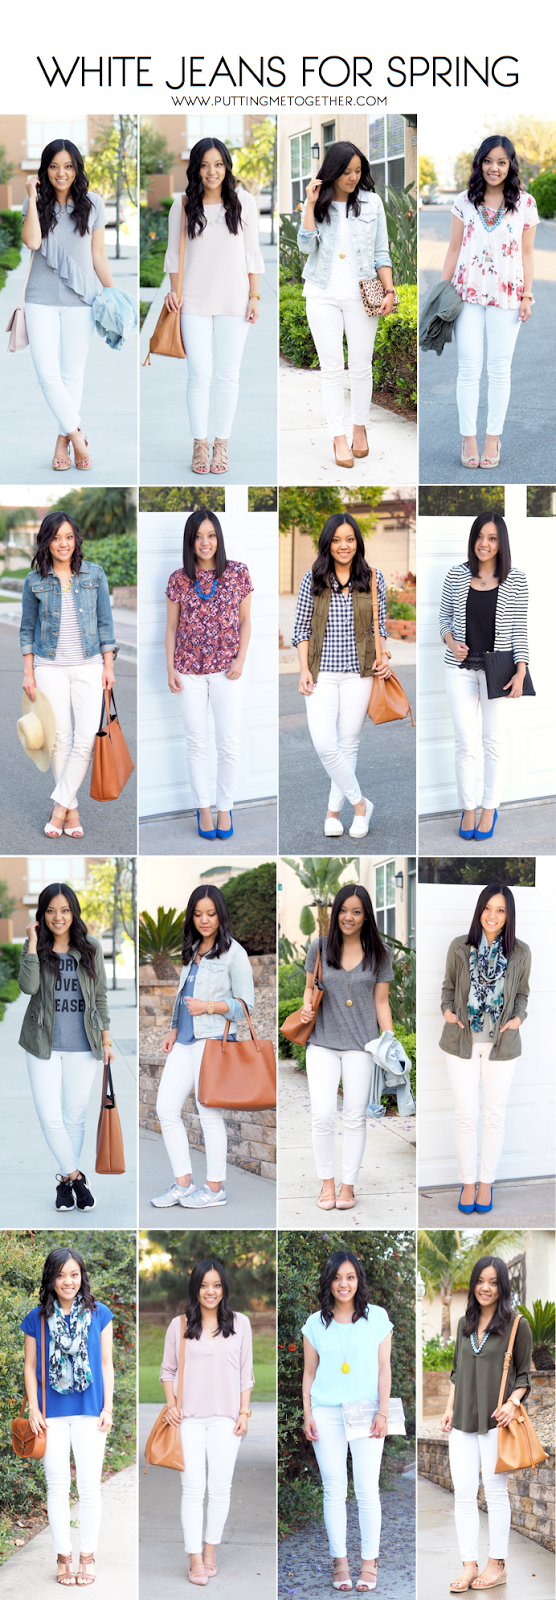 White Jeans for Spring - 16 Outfits